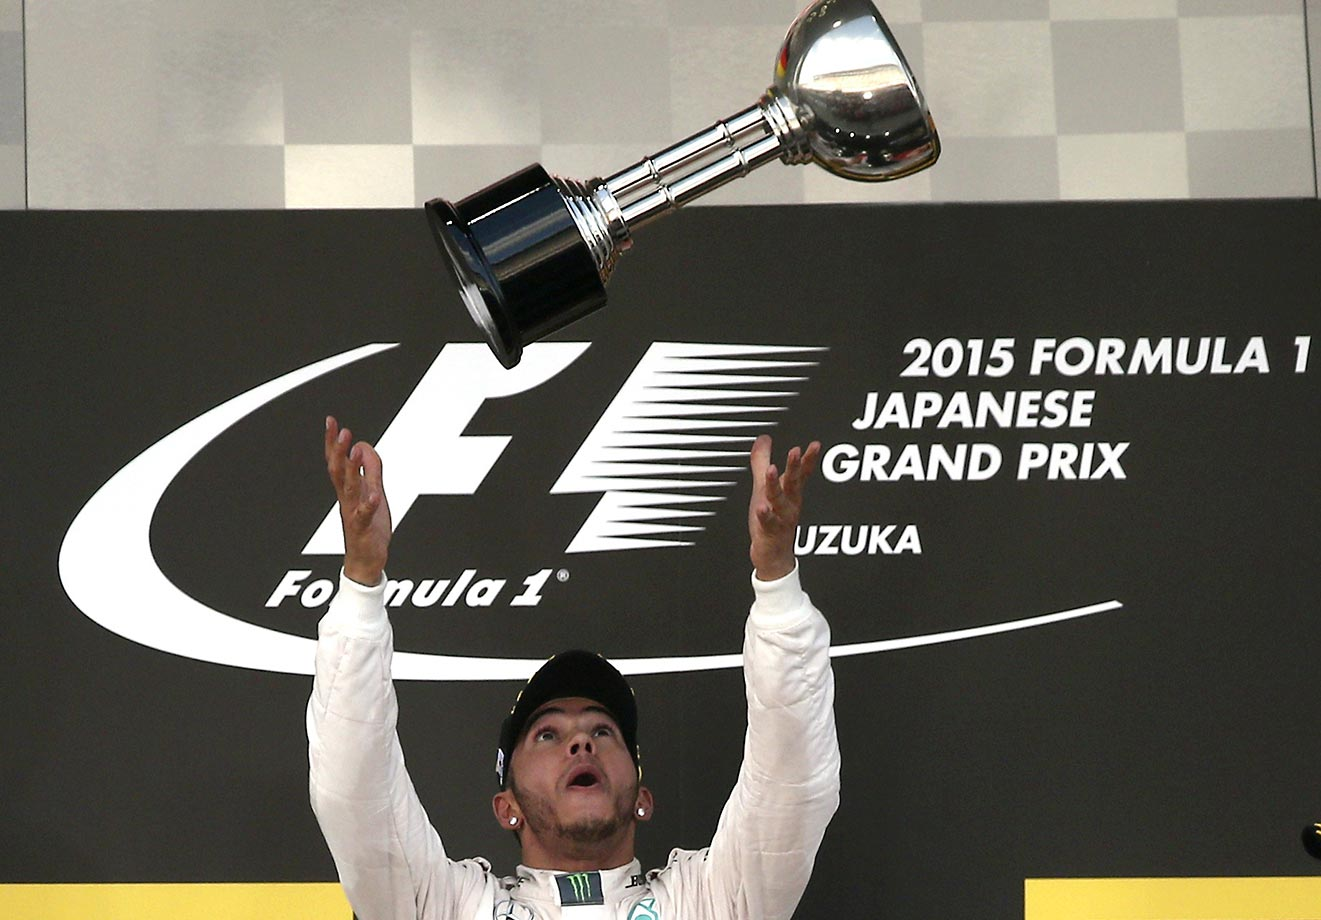 Lewis Hamilton throws the trophy into the air after winning the Japanese Formula One Grand Prix.